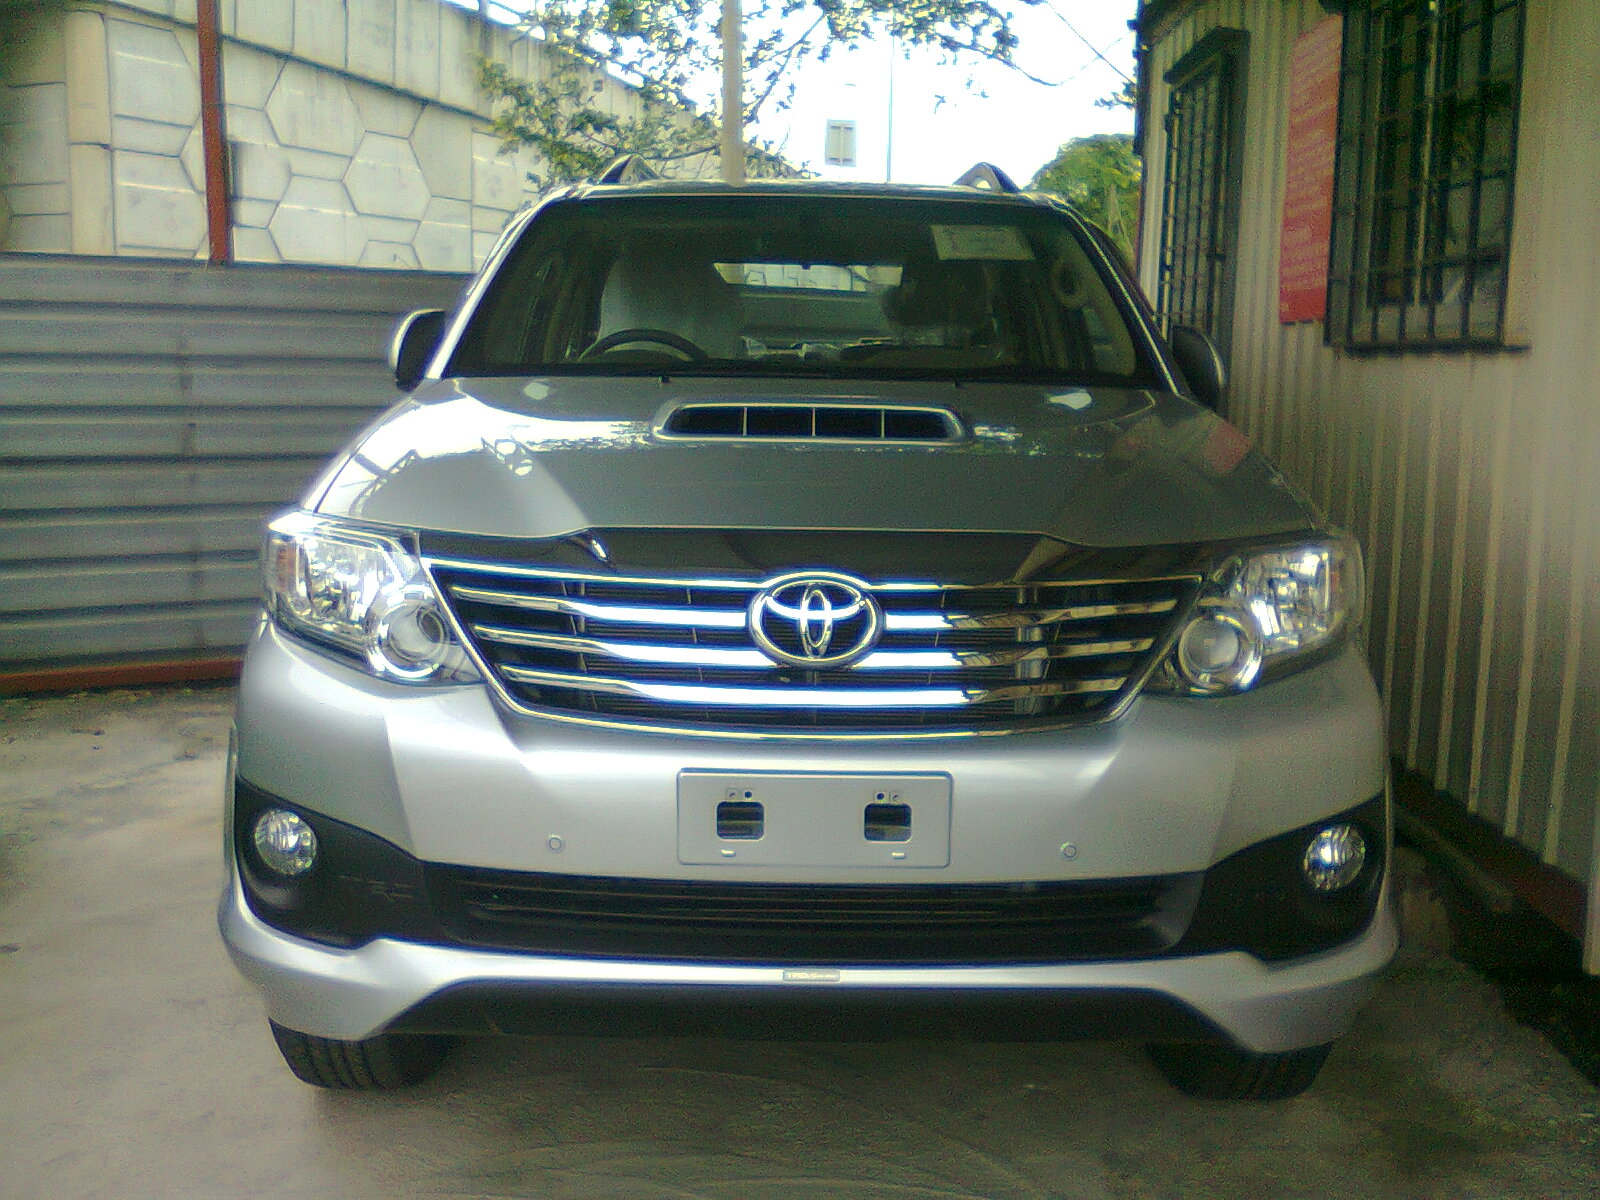 brand new camry price toyota yaris trd parts 2013 fortuner 2.5 & 2.7 | toyotanewcars